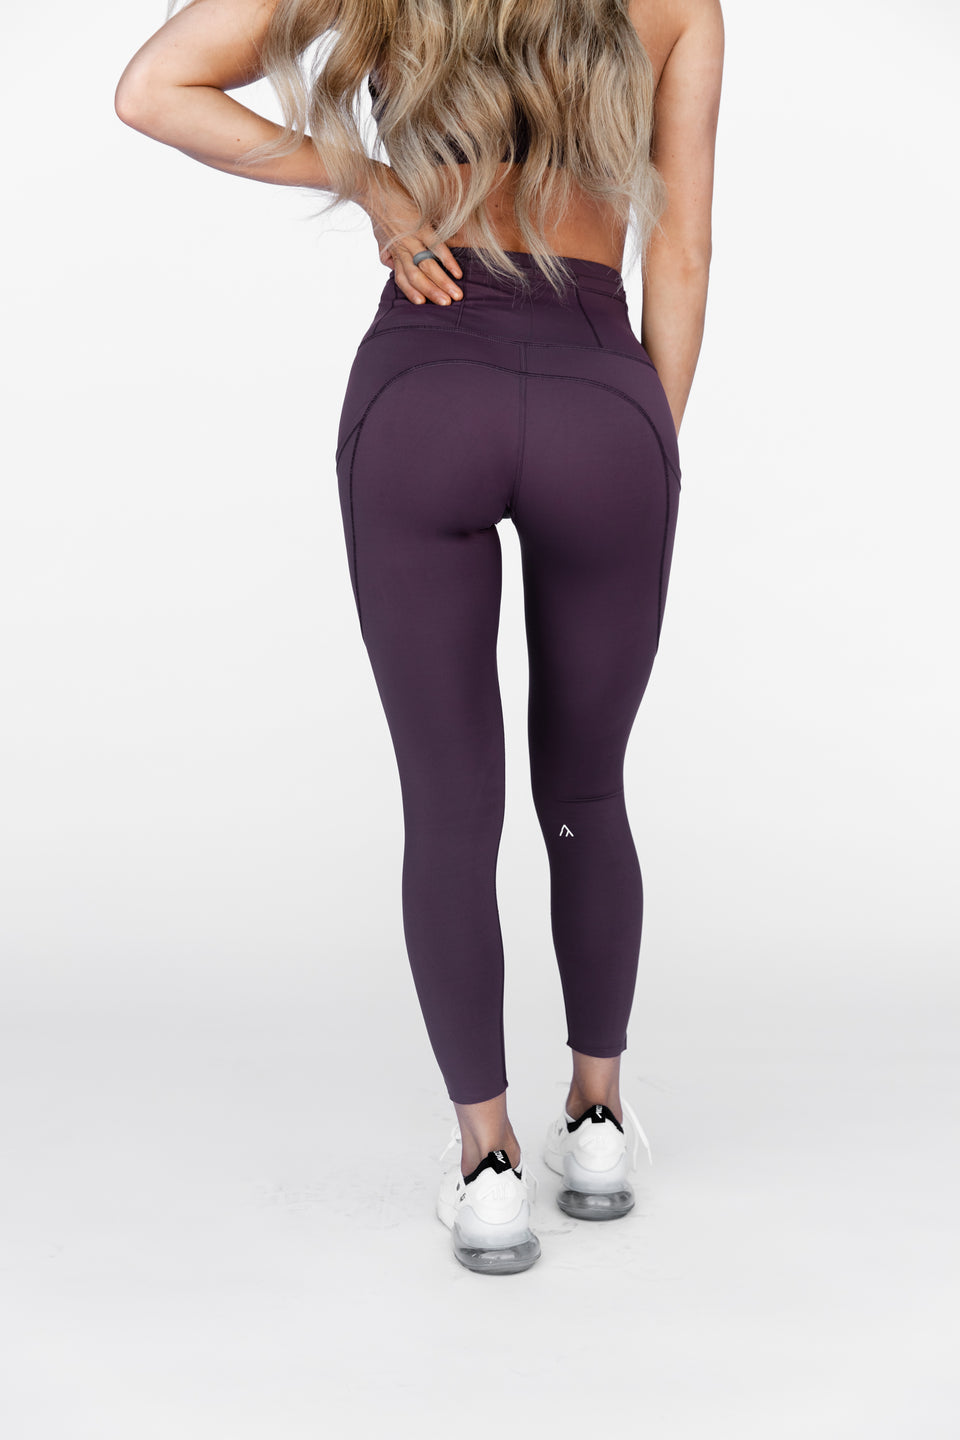 ARK ii LEGGING - IMPERIAL